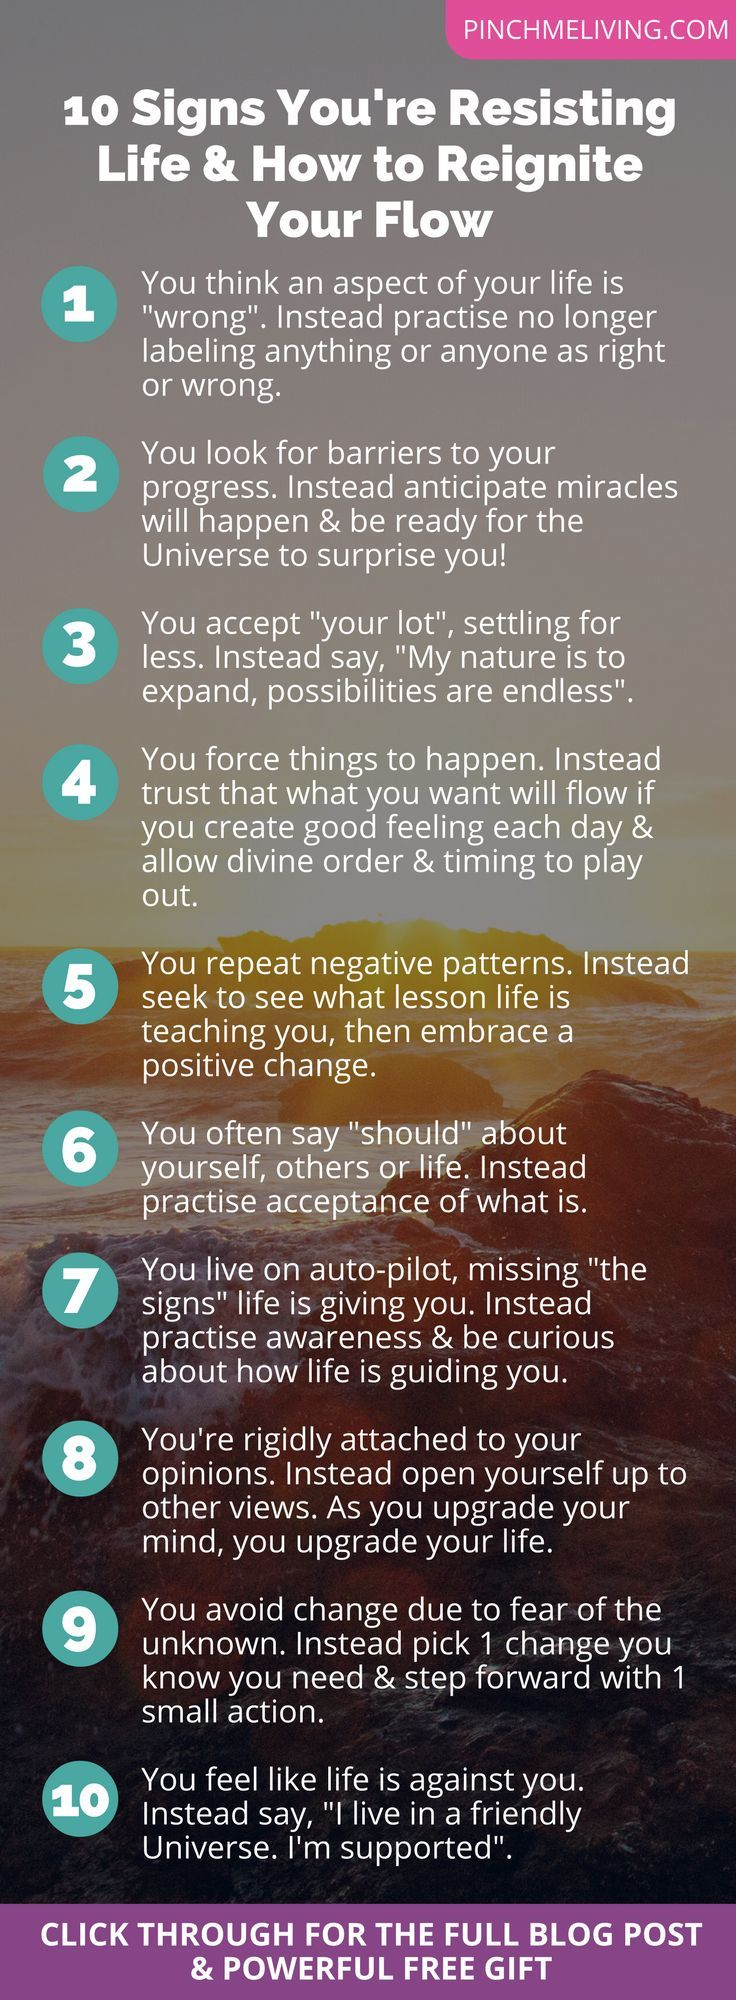 Feeling frustrated or stuck? Here are 10 signs that you're resisting life, and tips for how to reignite your flow via @pinchmeliving + a free download of 10 powerful truths you need to know, to live a positive, empowered life. https://www.pinchmeliving.com/10-signs-youre-resisting-life-and-how-to-reignite-your-flow/